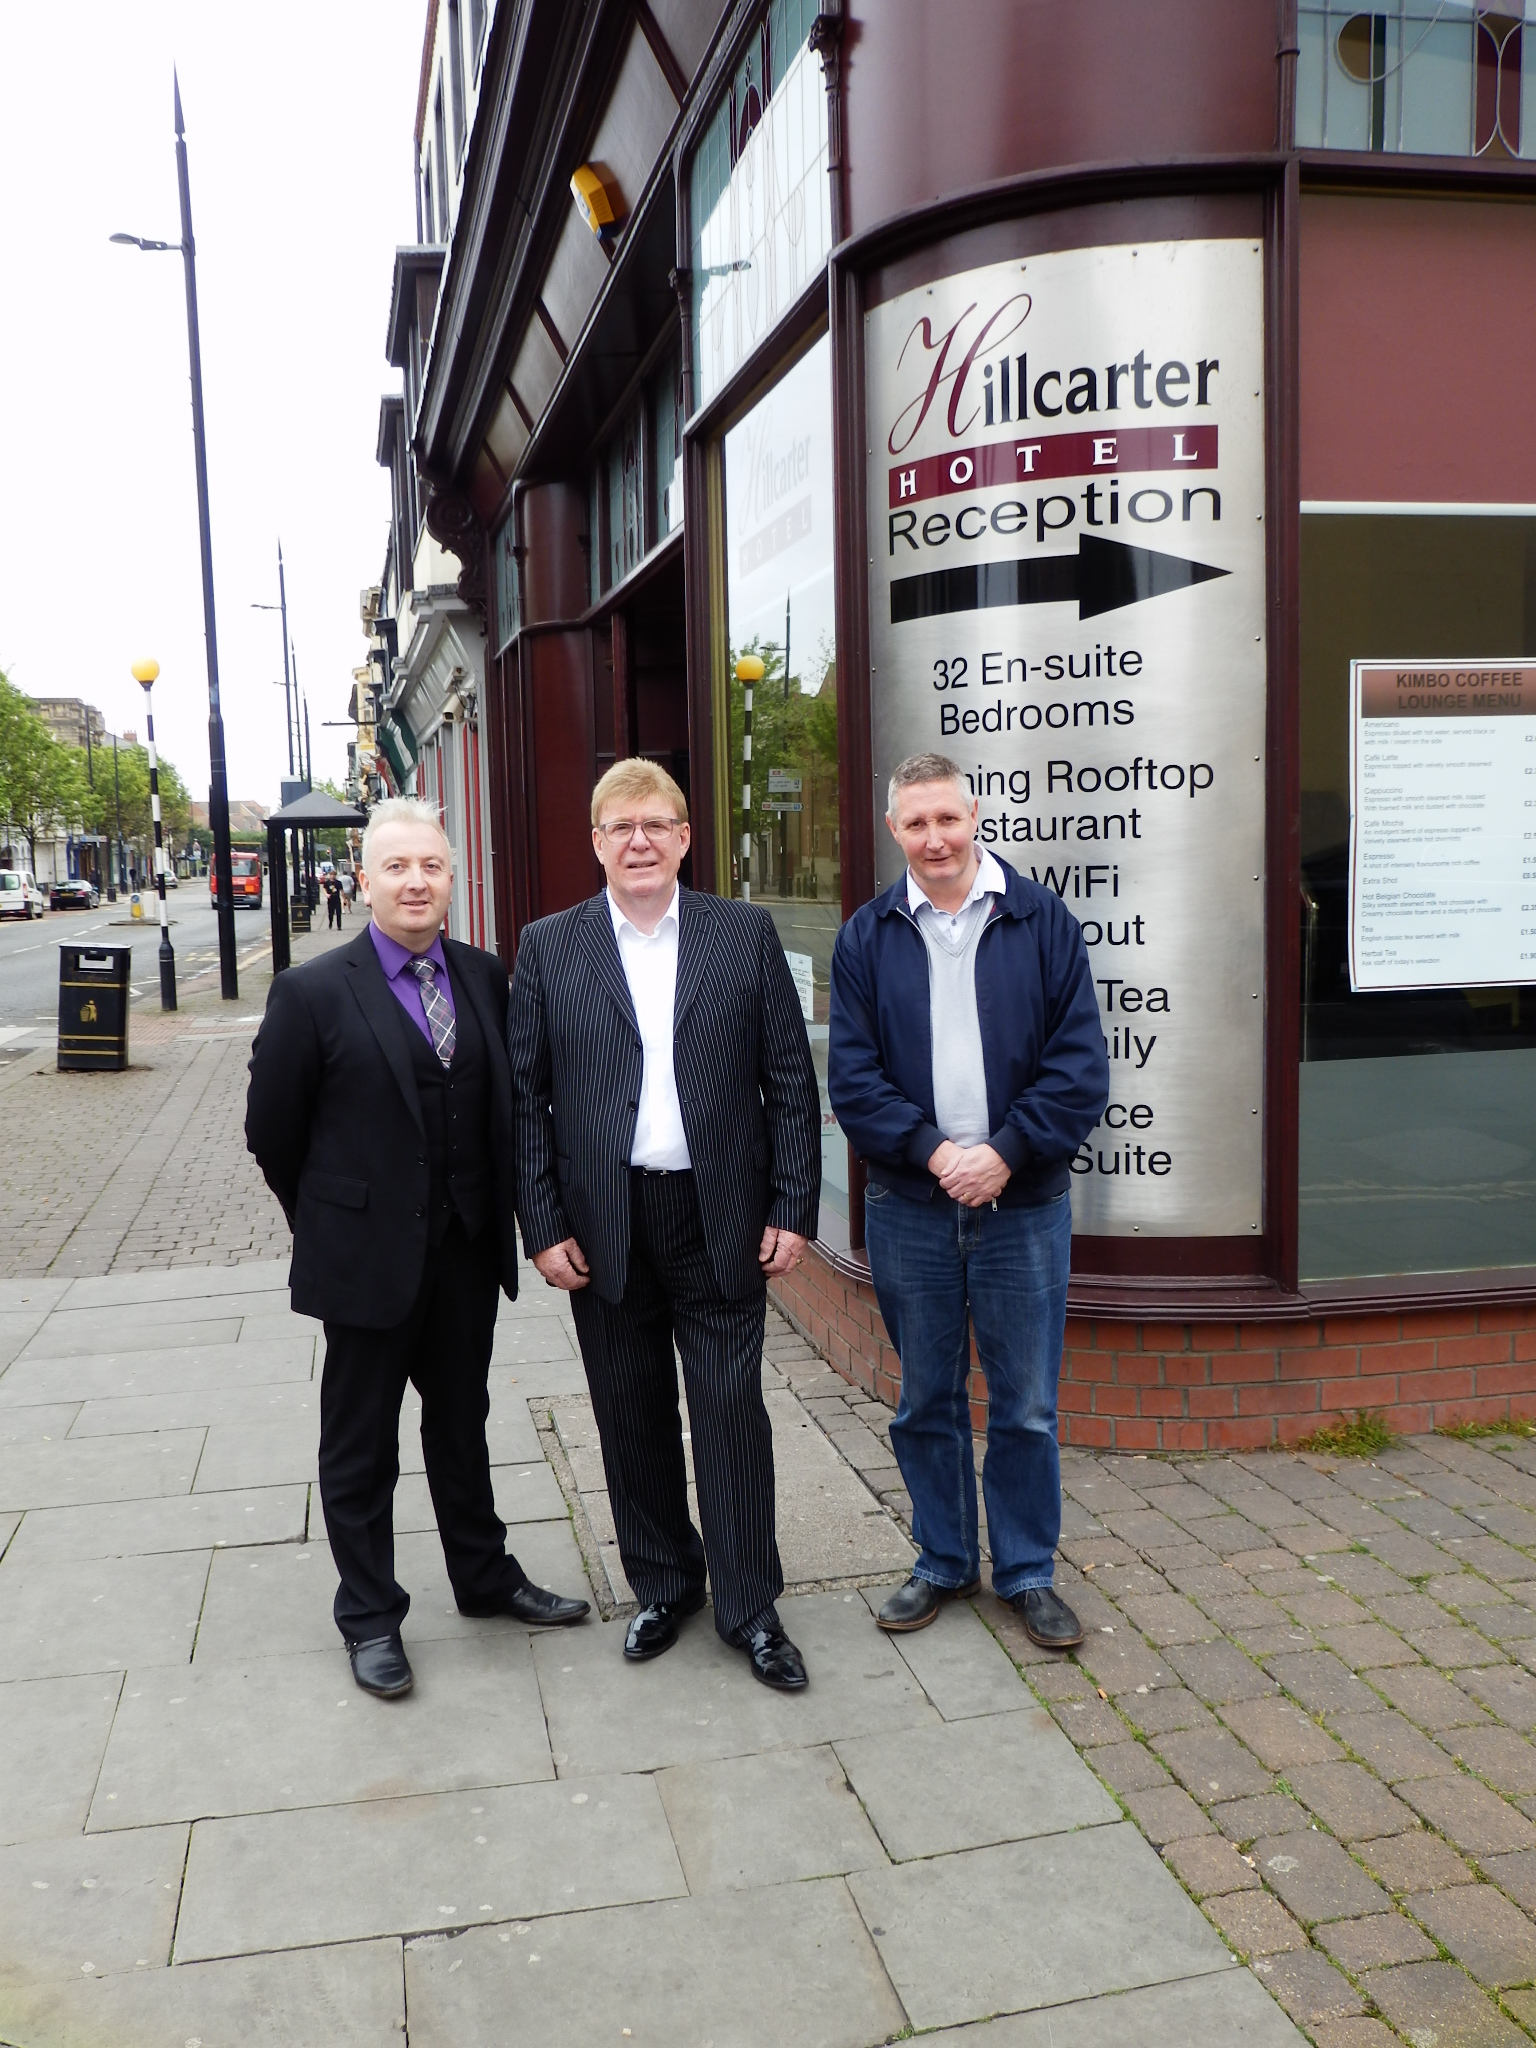 Brian Morton (centre) is pictured with Coun Christopher Akers-Belcher (left) and Coun Robbie Payne, chair of the Council's Regen